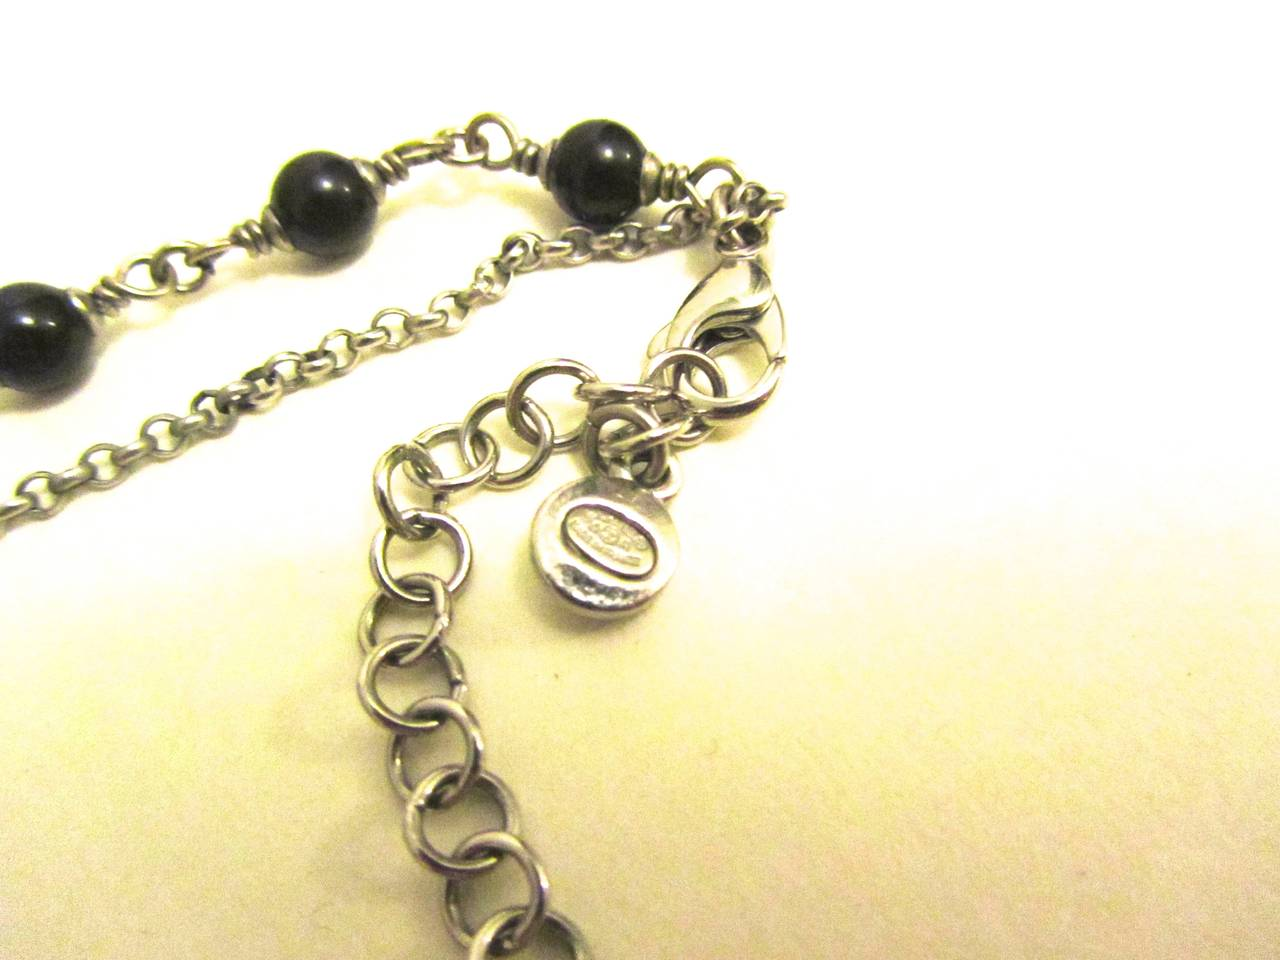 Chanel Necklace - Double Strand Alternating Black Beads - CC Logo 4